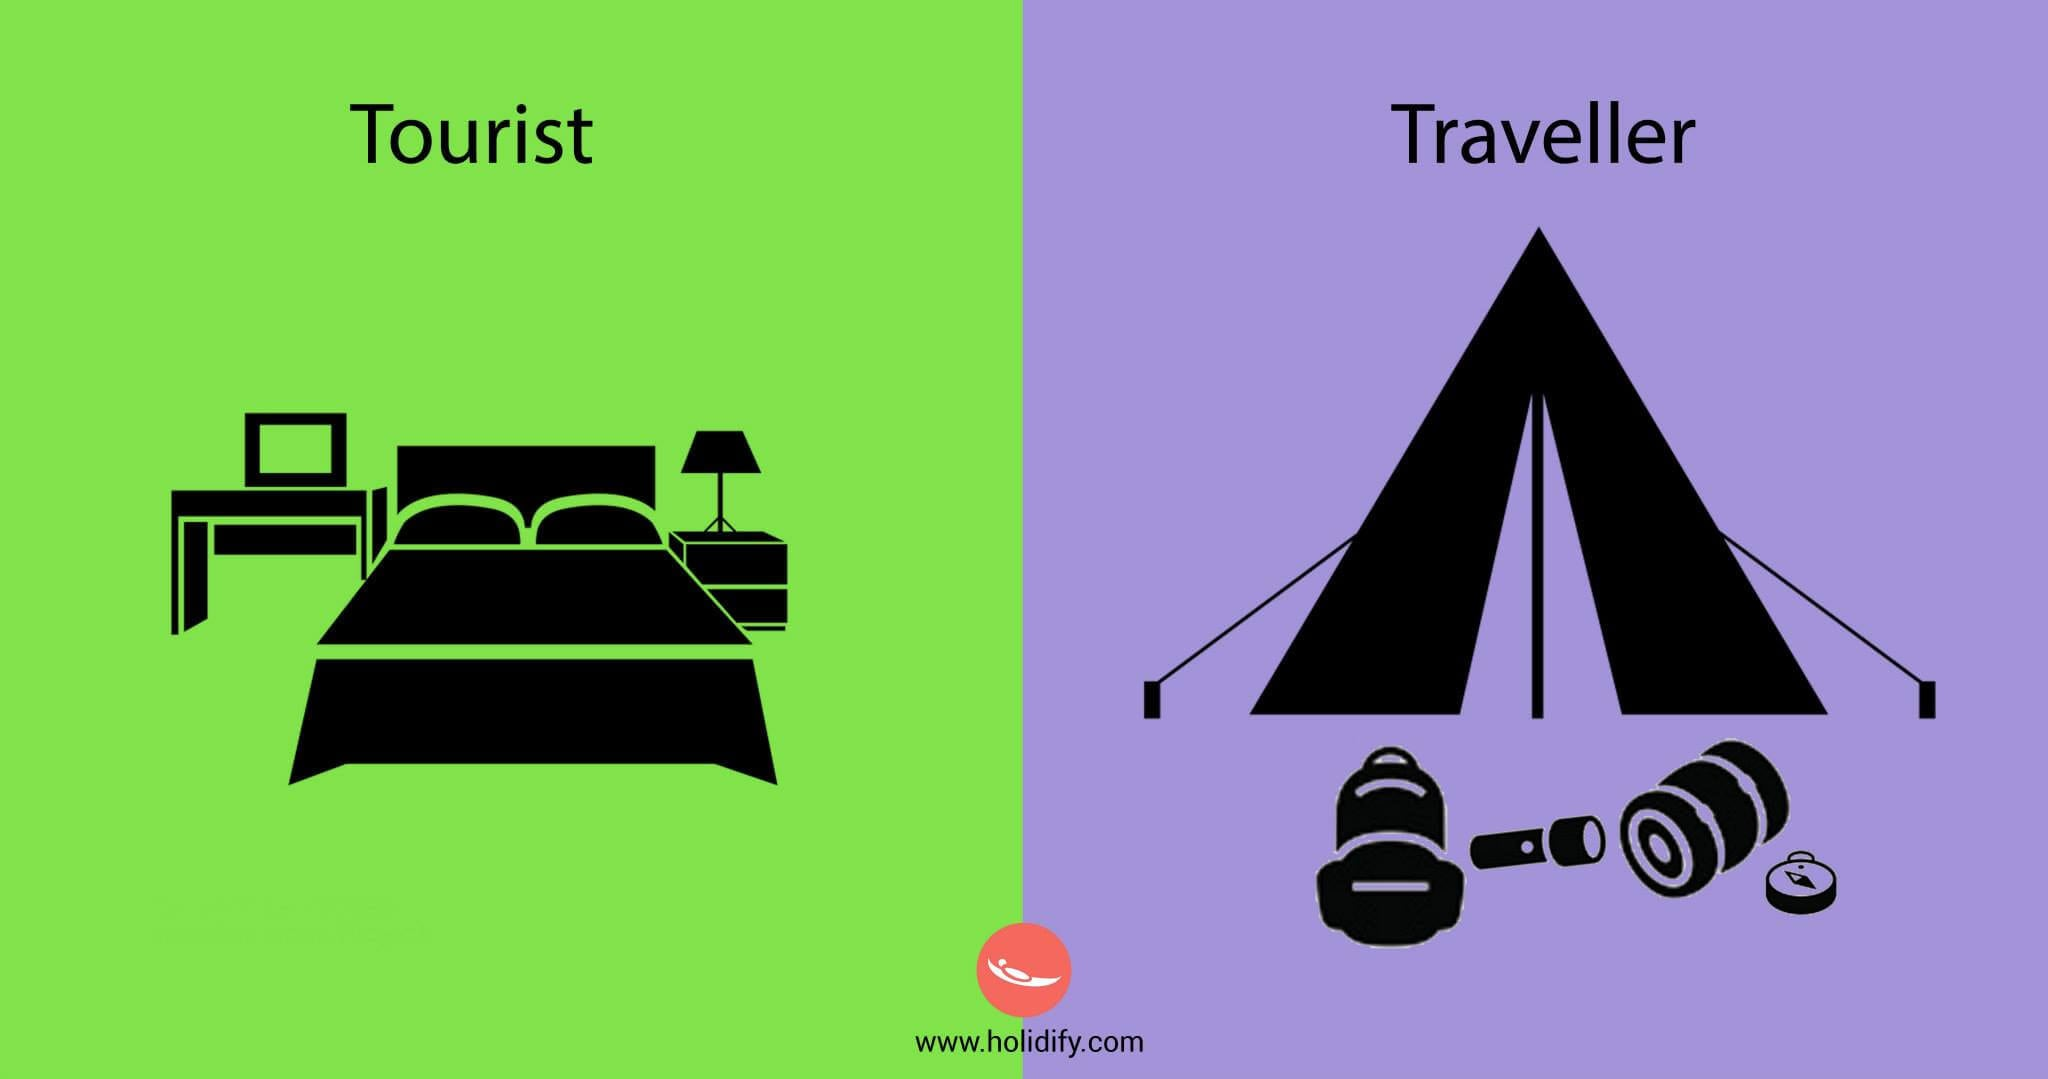 tourist-vs-traveller-freeyork-13